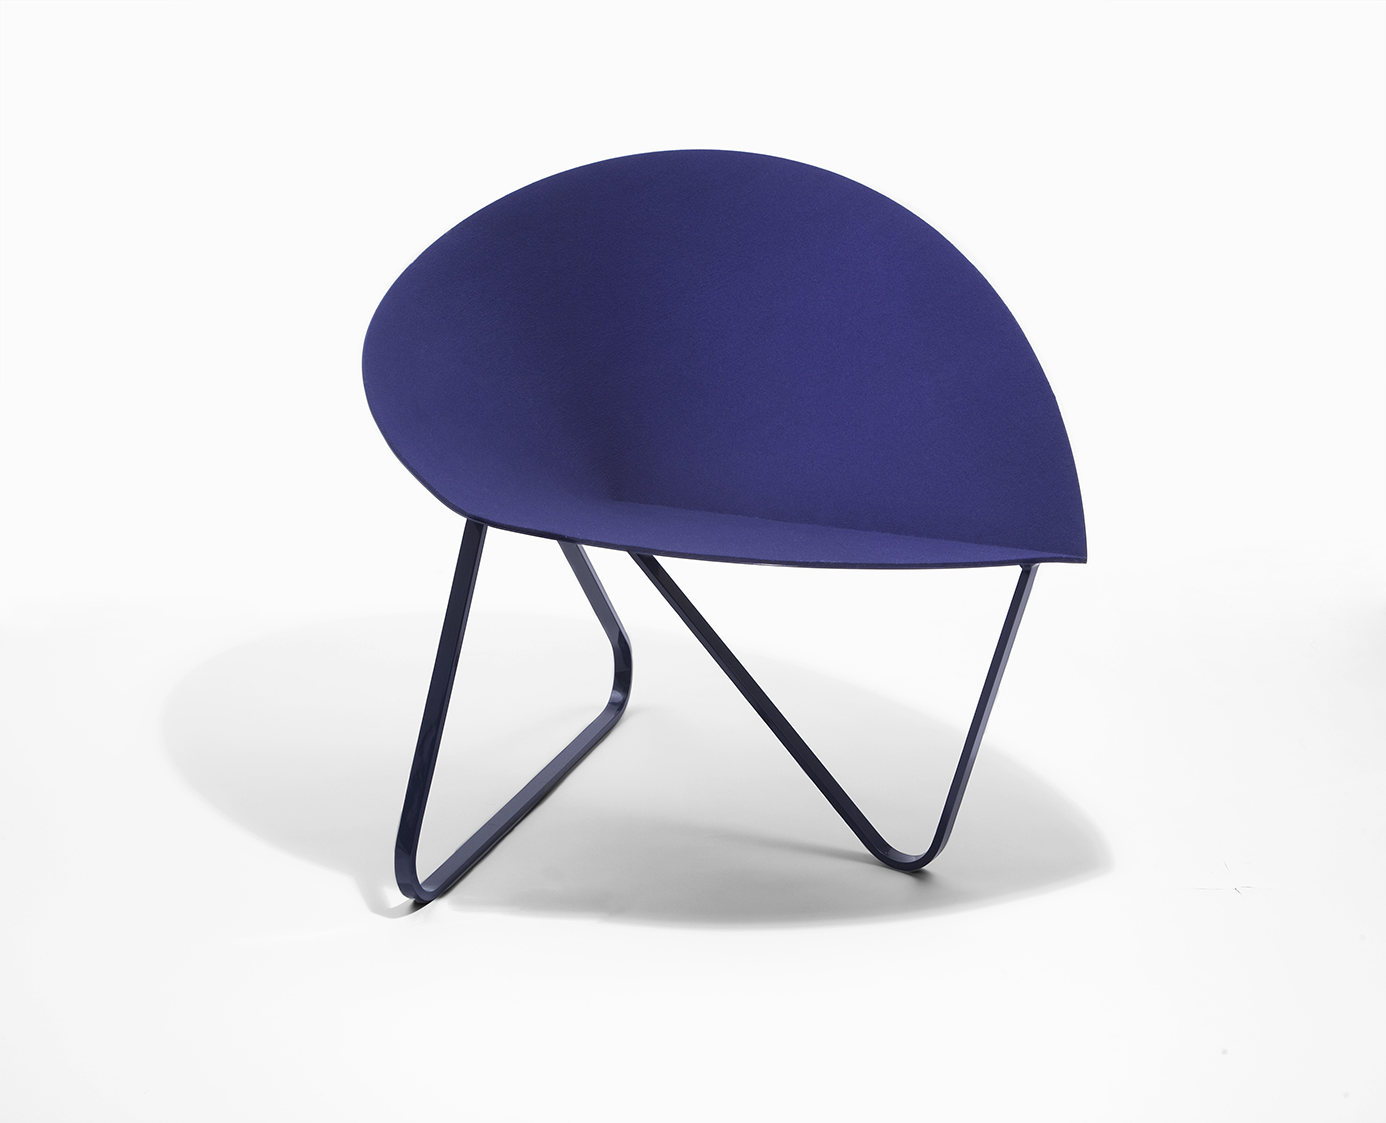 Curved Chair by Nina Cho